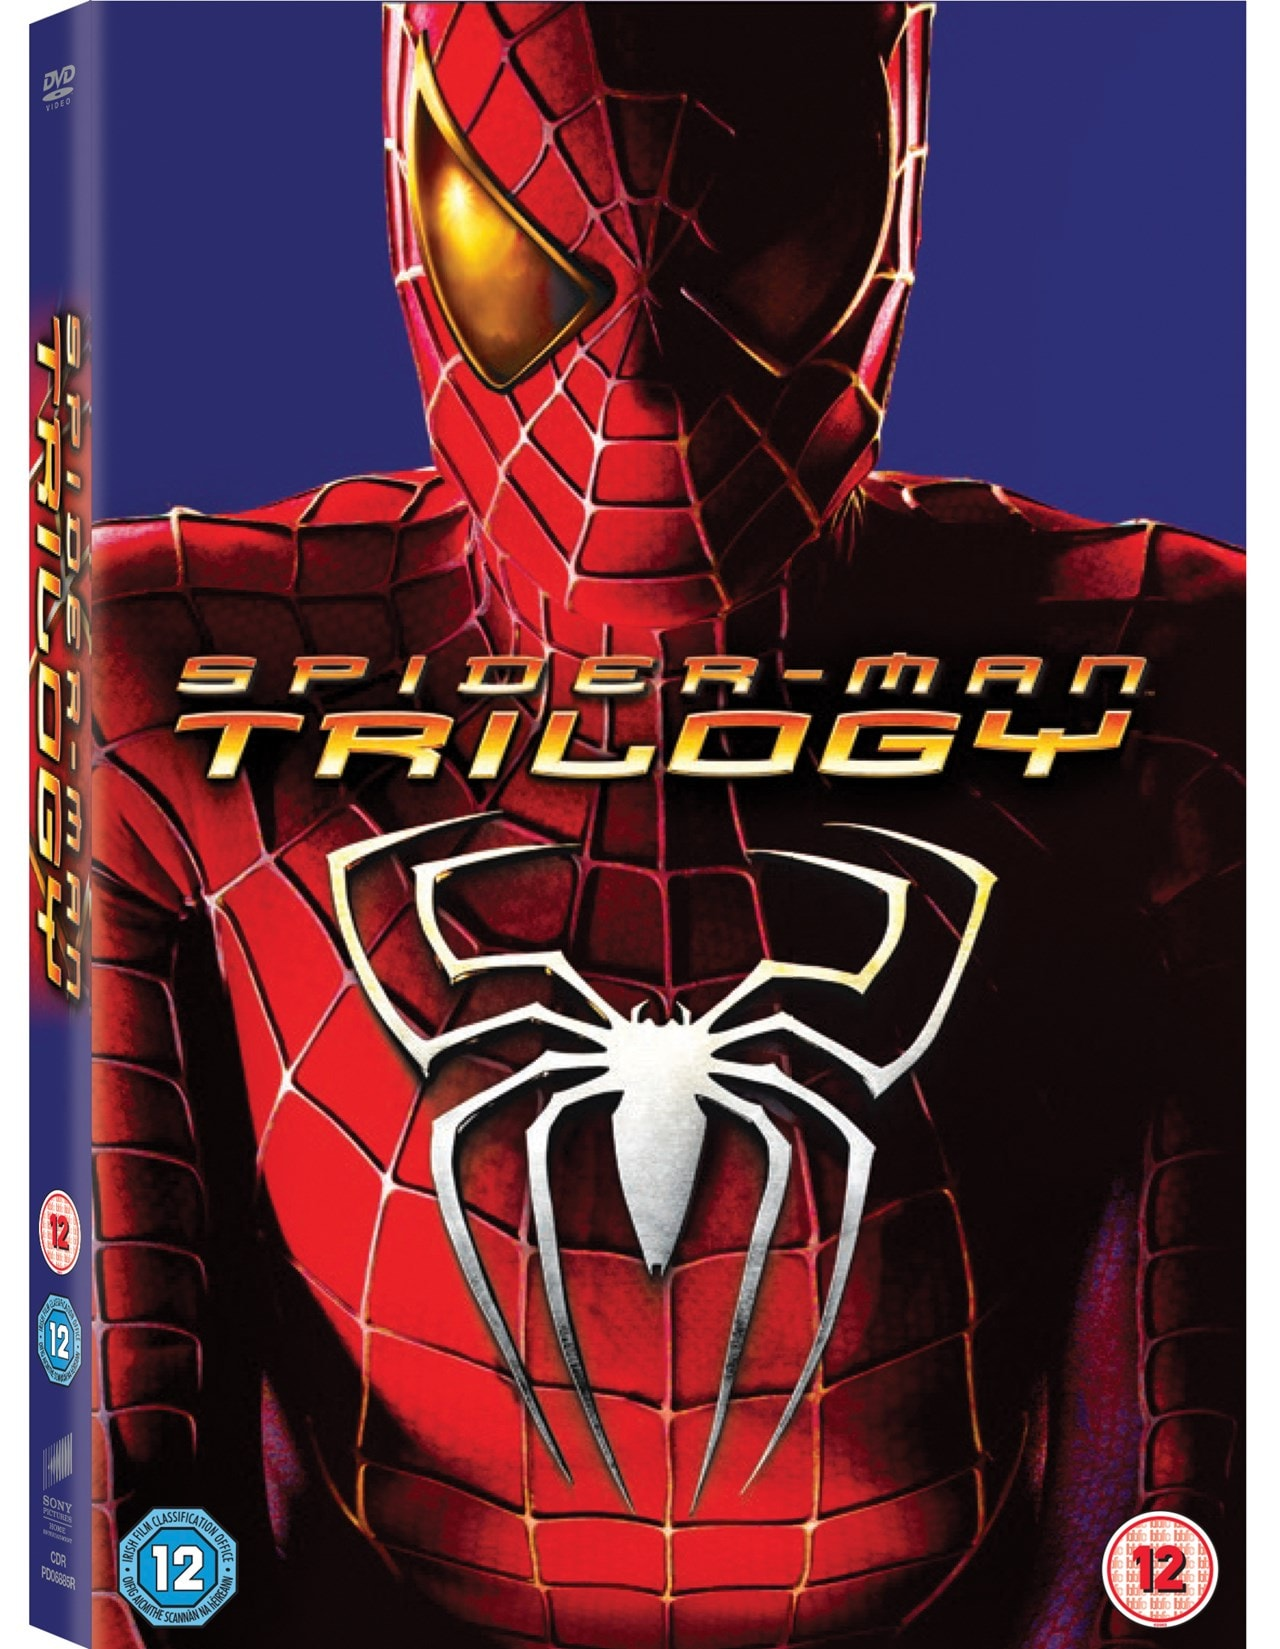 Spider-Man Trilogy - 1